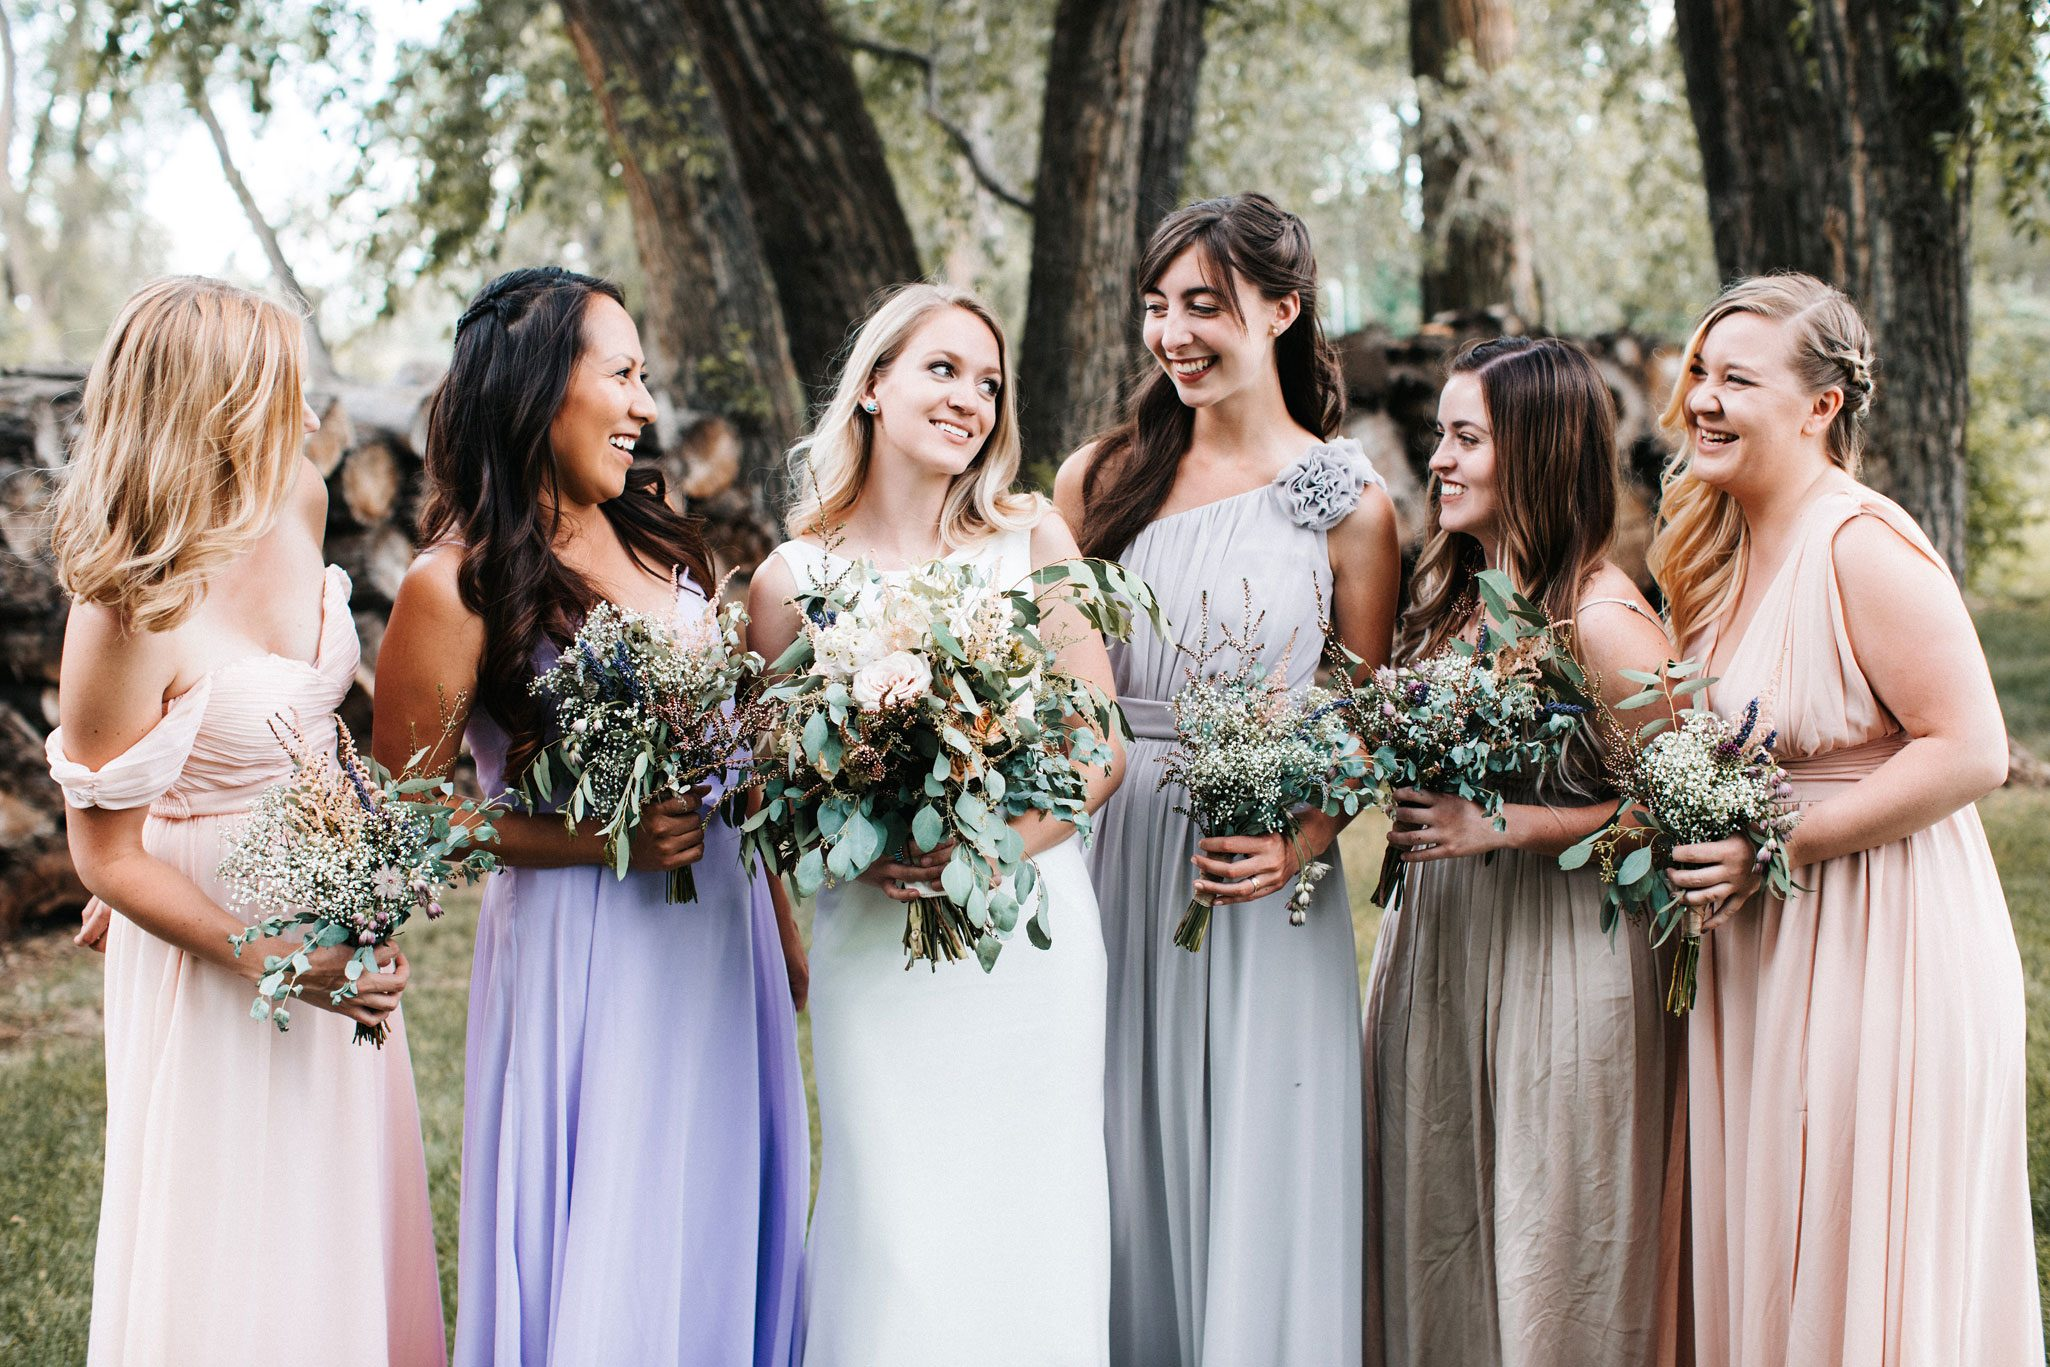 Bridesmaids | A Romantic Garden Wedding in Durango, Colorado